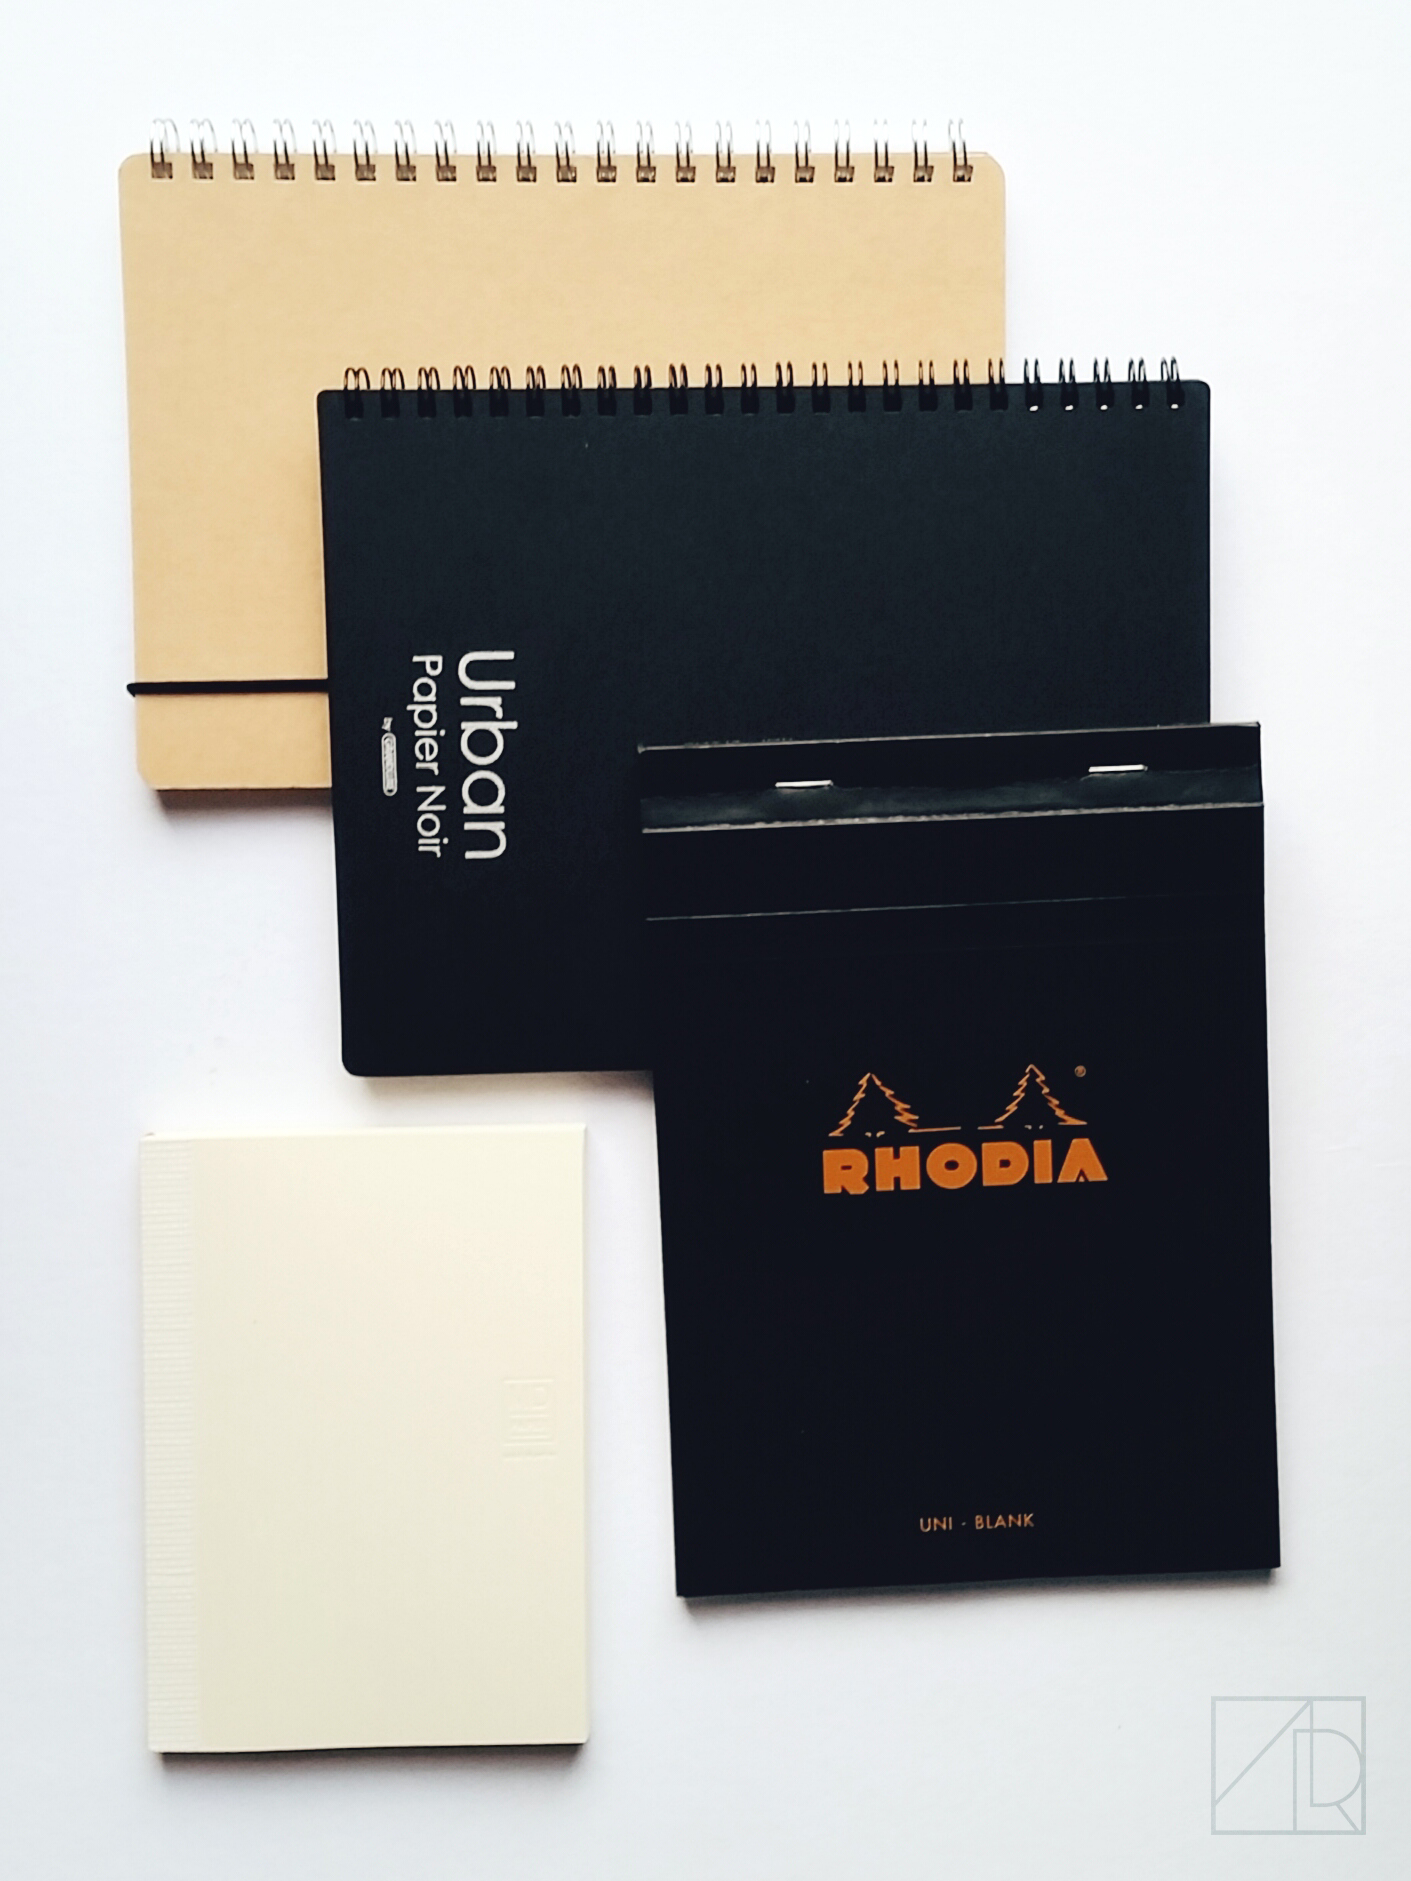 Muji Dotted Notebook, Urban Papier Noir, Rhodia Uni Blank, Midori Pocket Notebook.